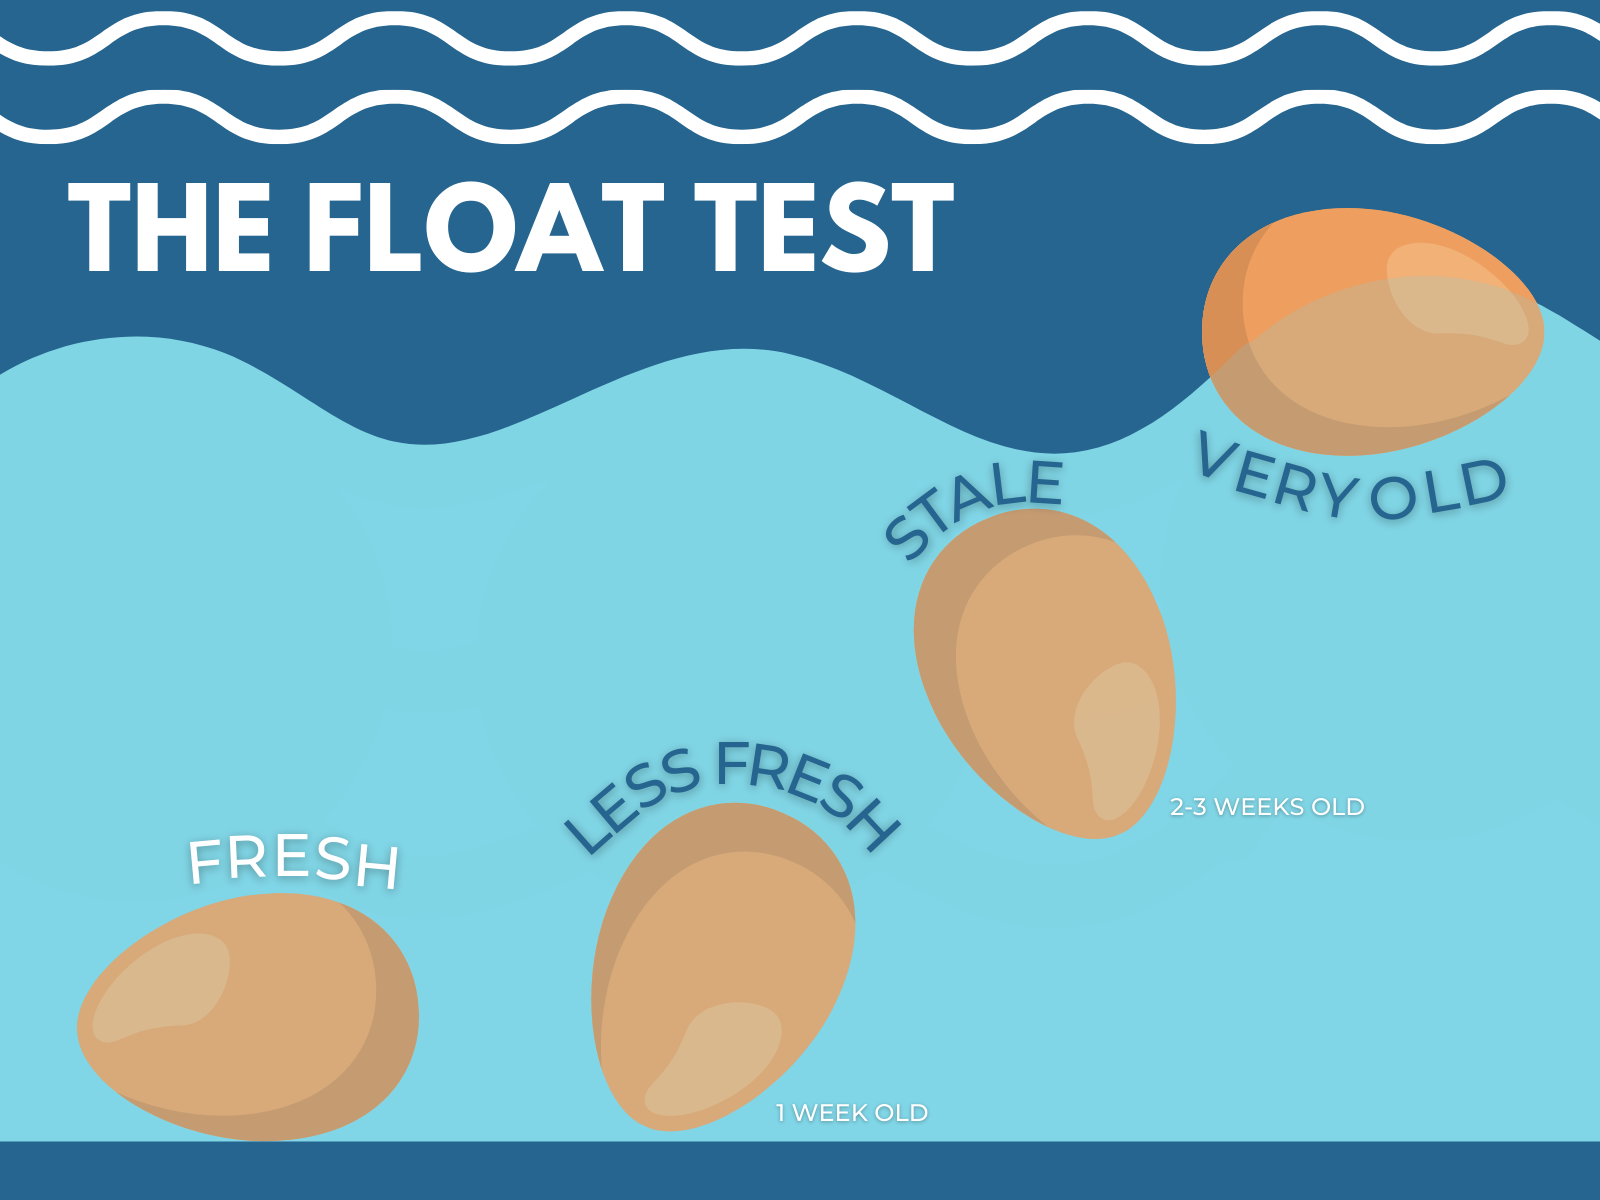 The Float Test (AJINOMOTO)